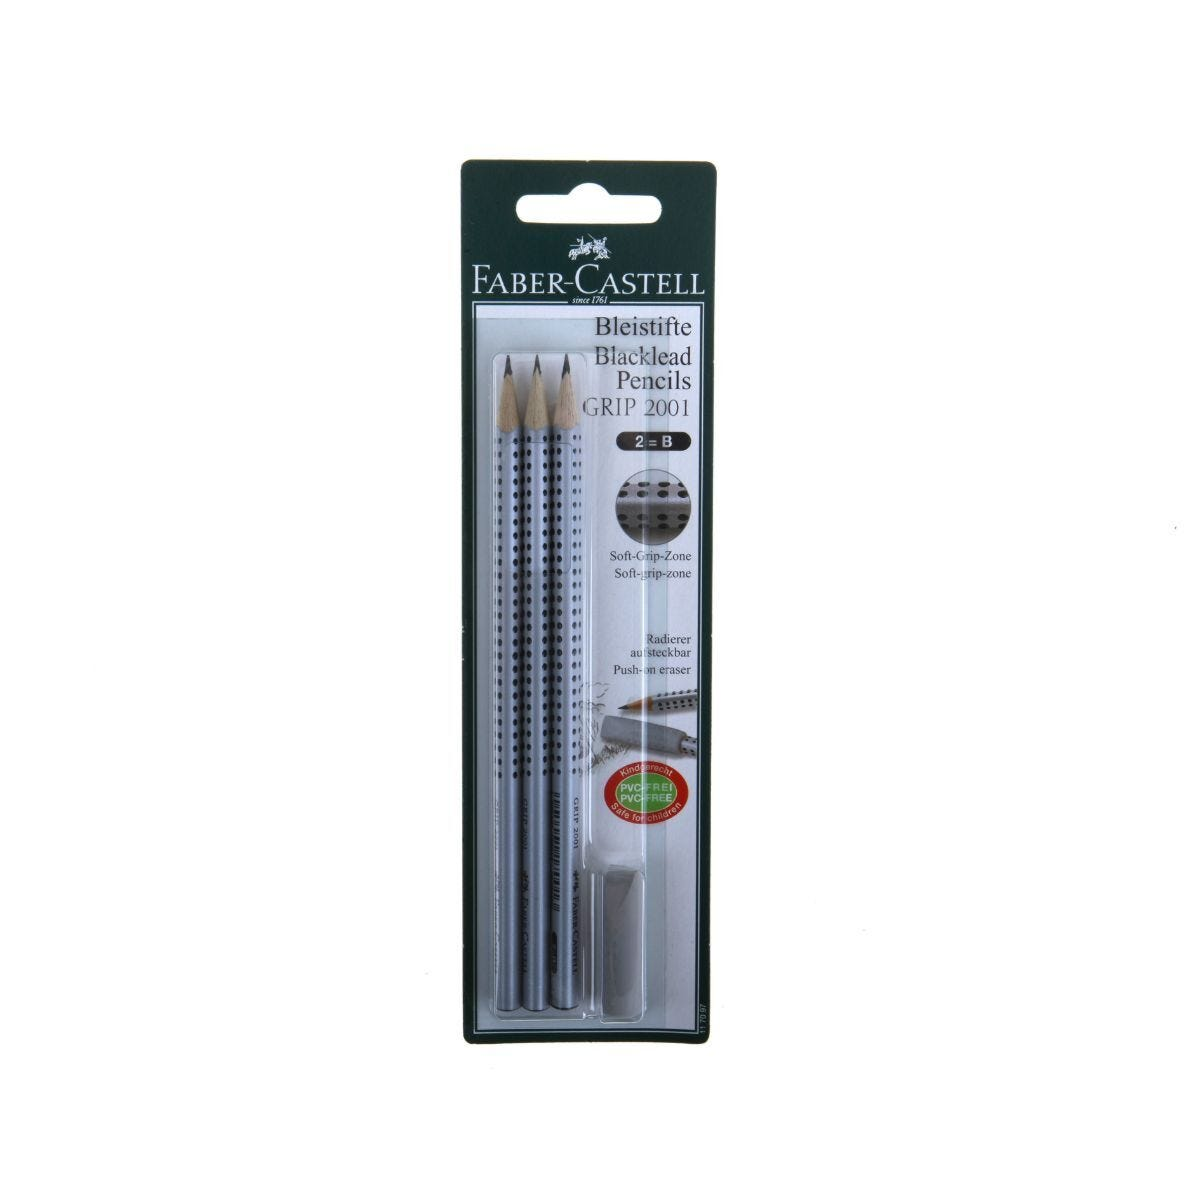 Faber Castell Soft Grip 2B Pencil Pack of 3